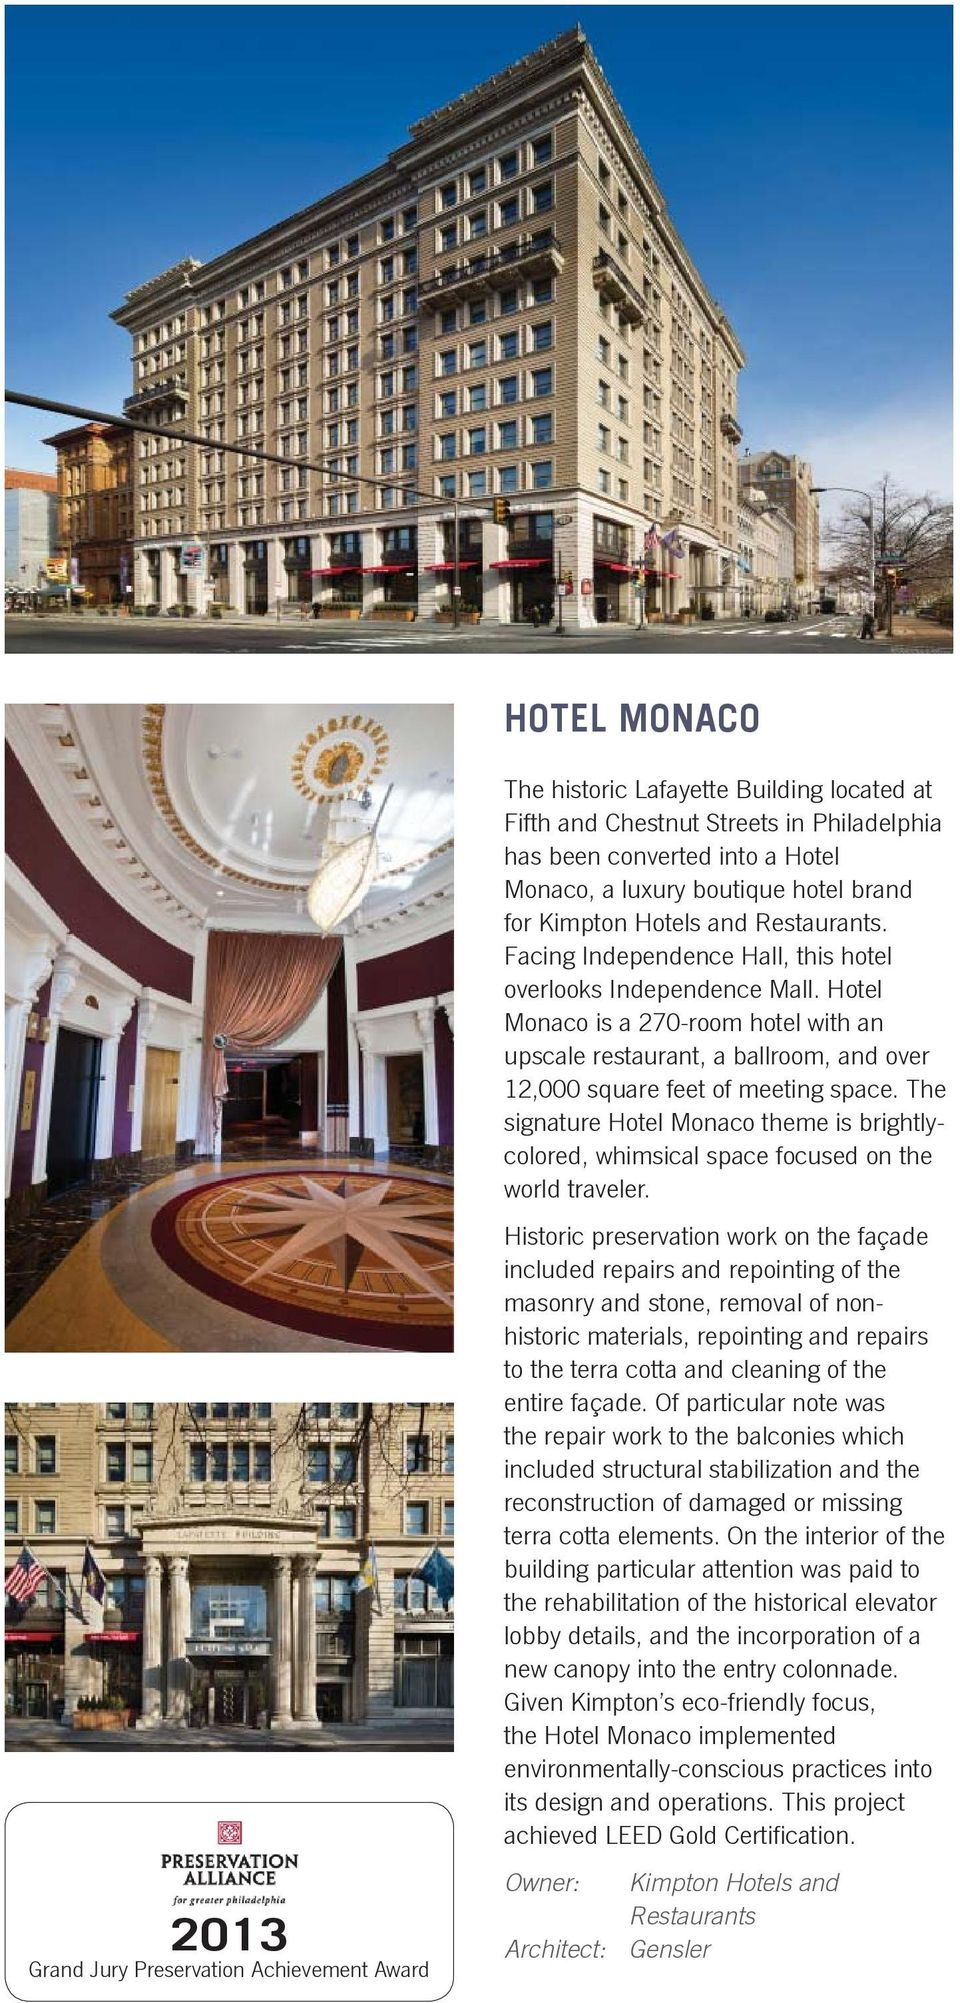 The signature Hotel Monaco theme is brightlycolored, whimsical space focused on the world traveler.